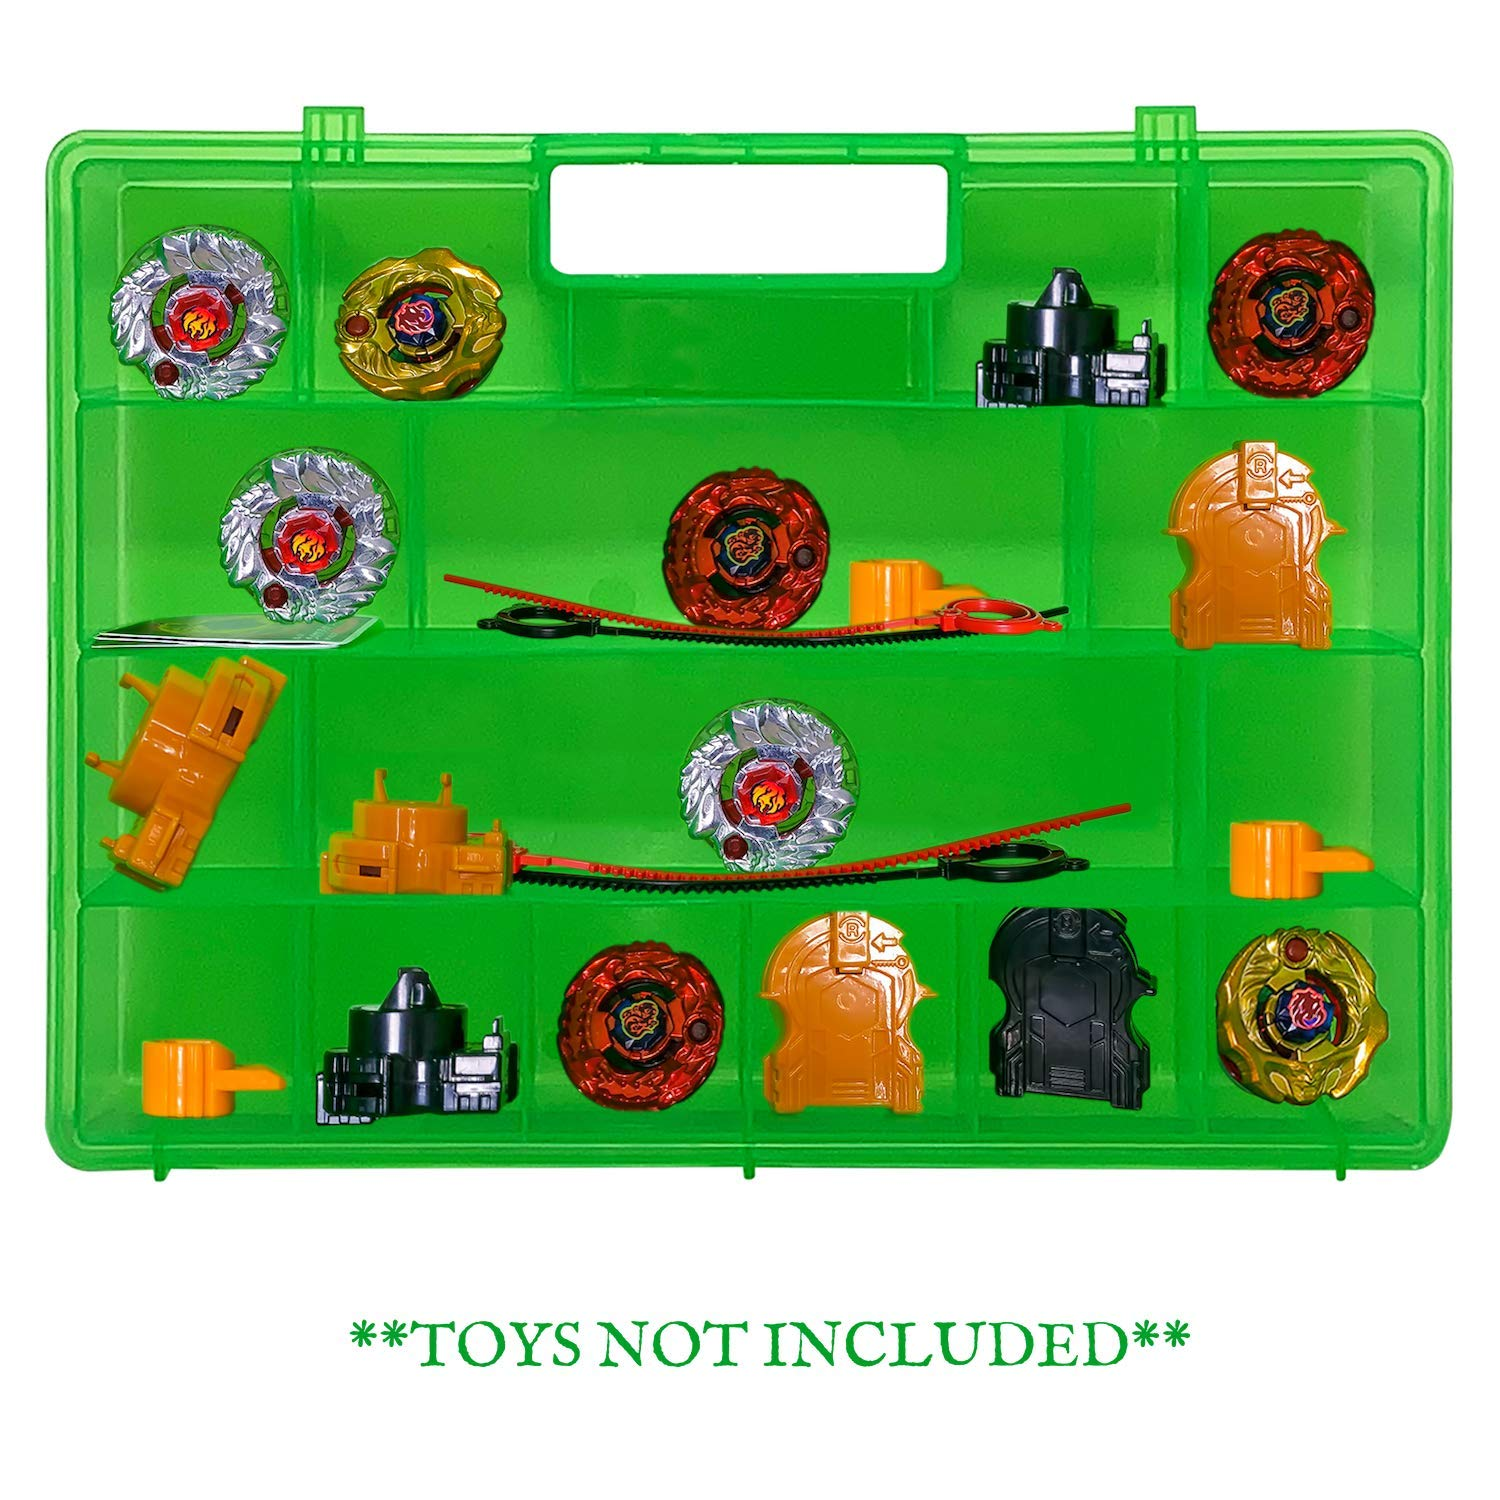 Compatible with Pokemon Figures This Box is Not Created by Pokemon Life Made Better Improved Blue Storage /& Carrying Case Toy Mini Figure Organizer